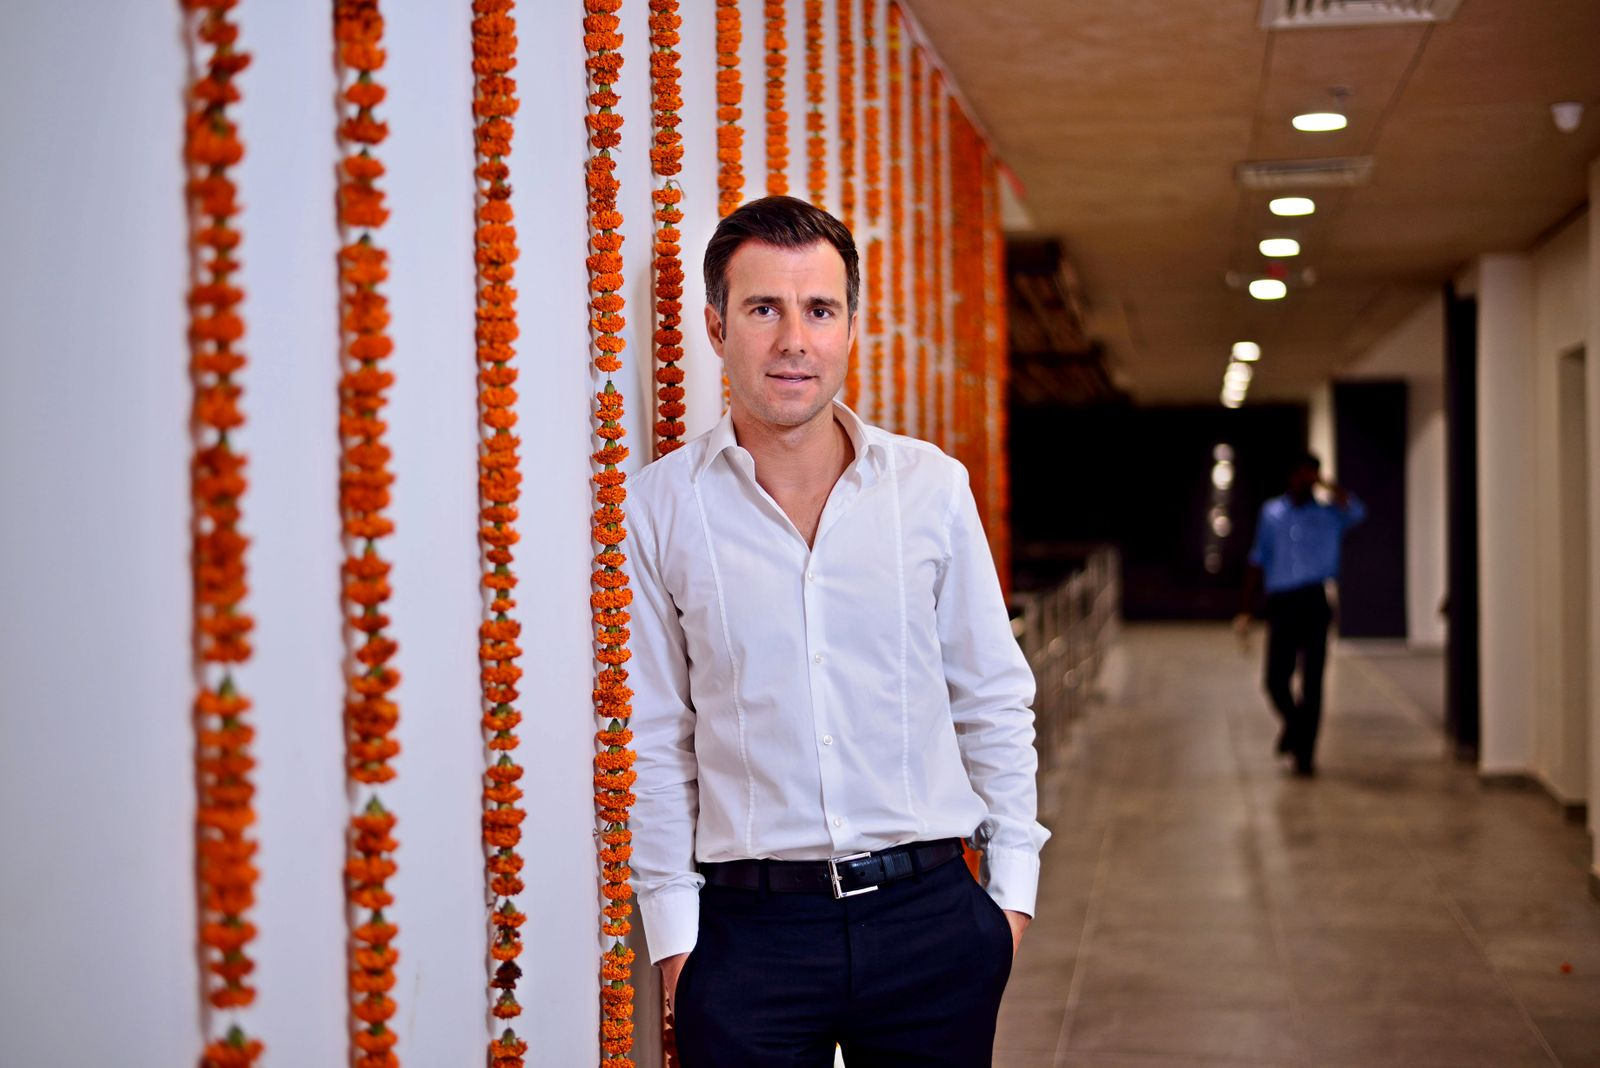 Profile Of Ralf Wenzel, Co-founder And CEO Global At Food Panda